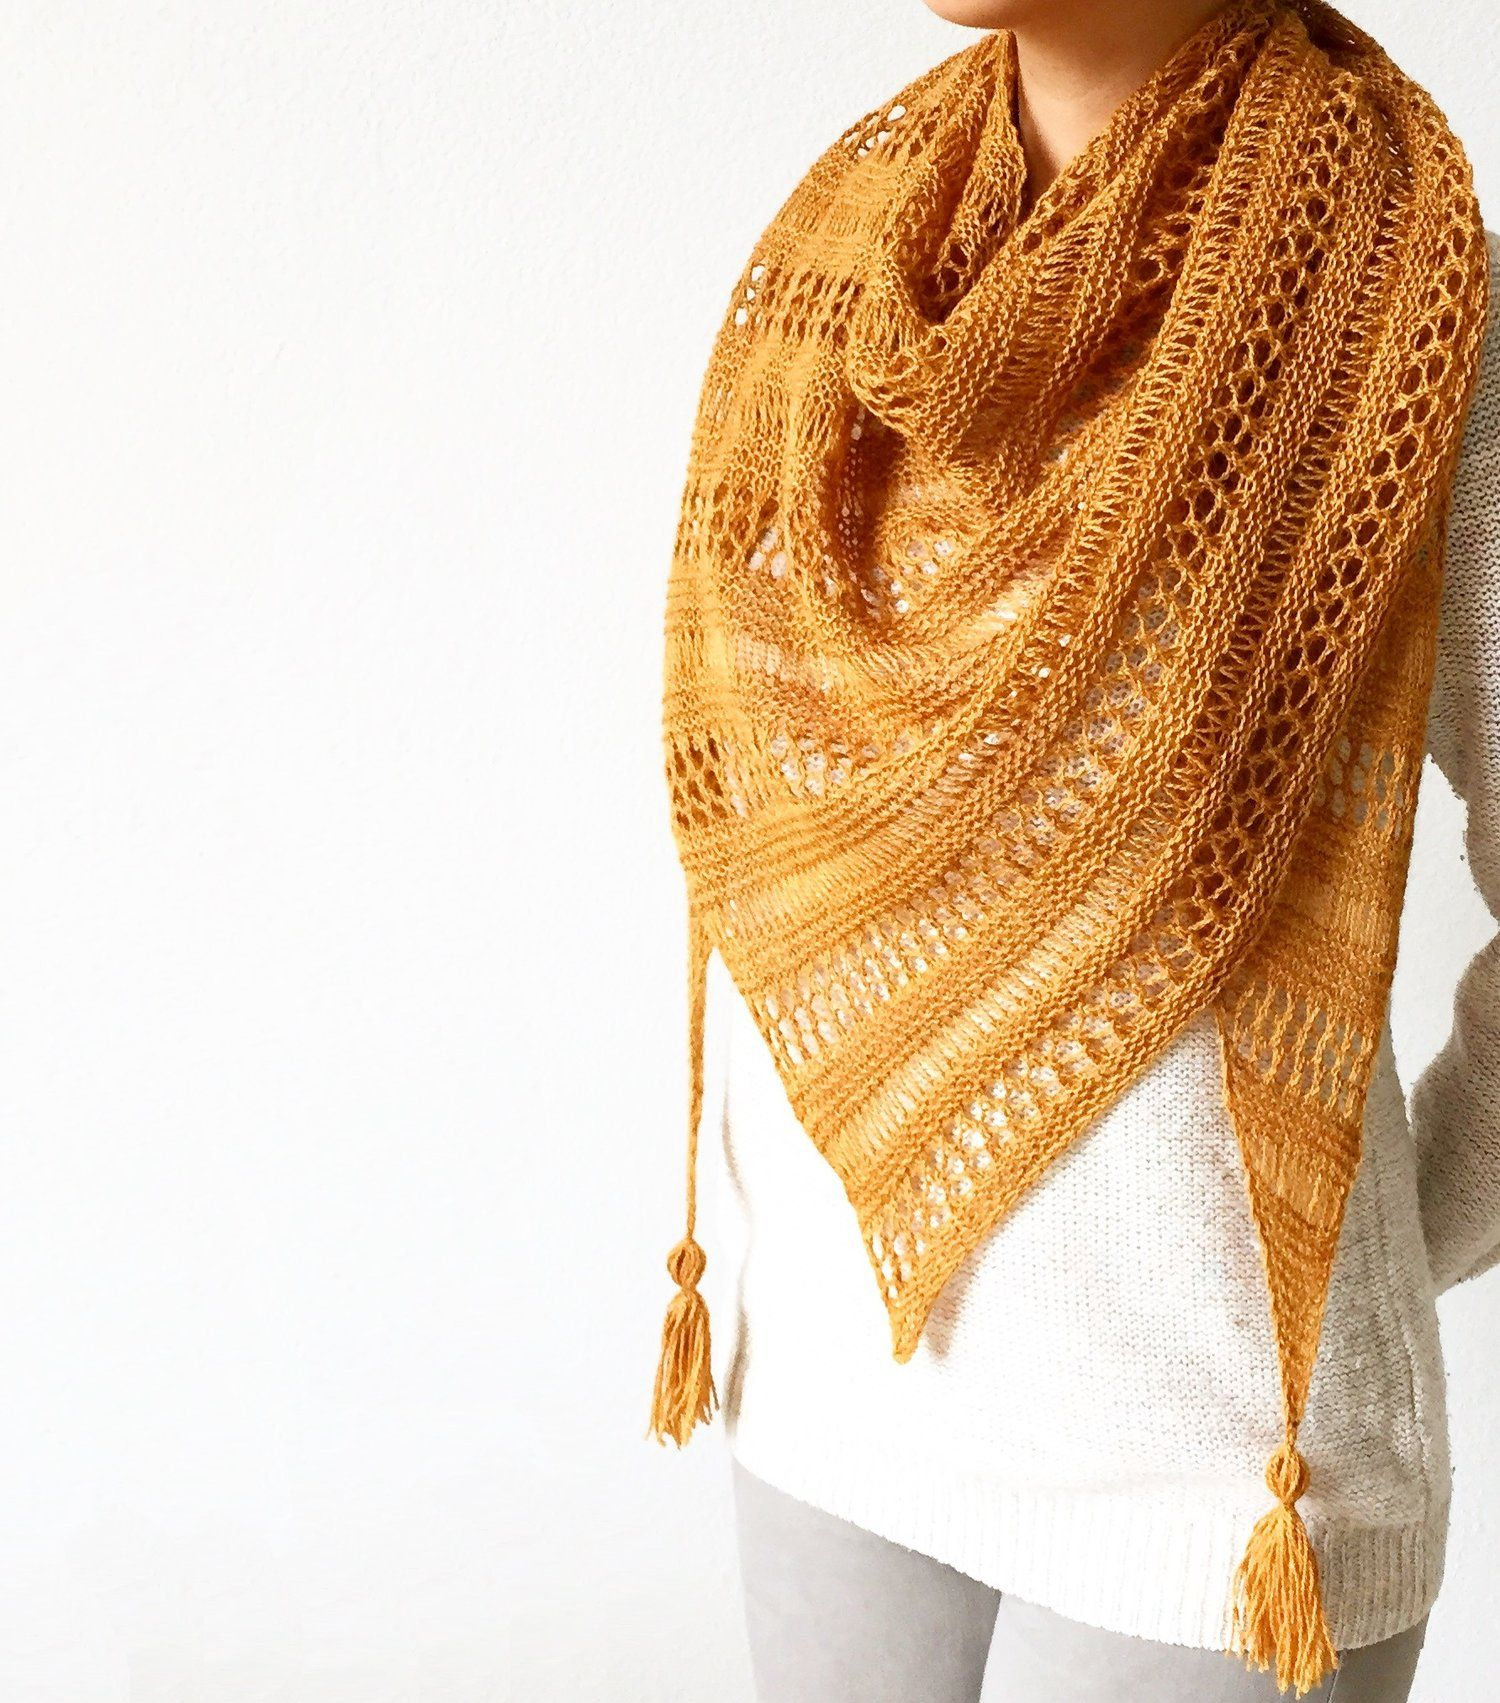 Free knitting patterns and step-by-step basic knitting lessons and ...